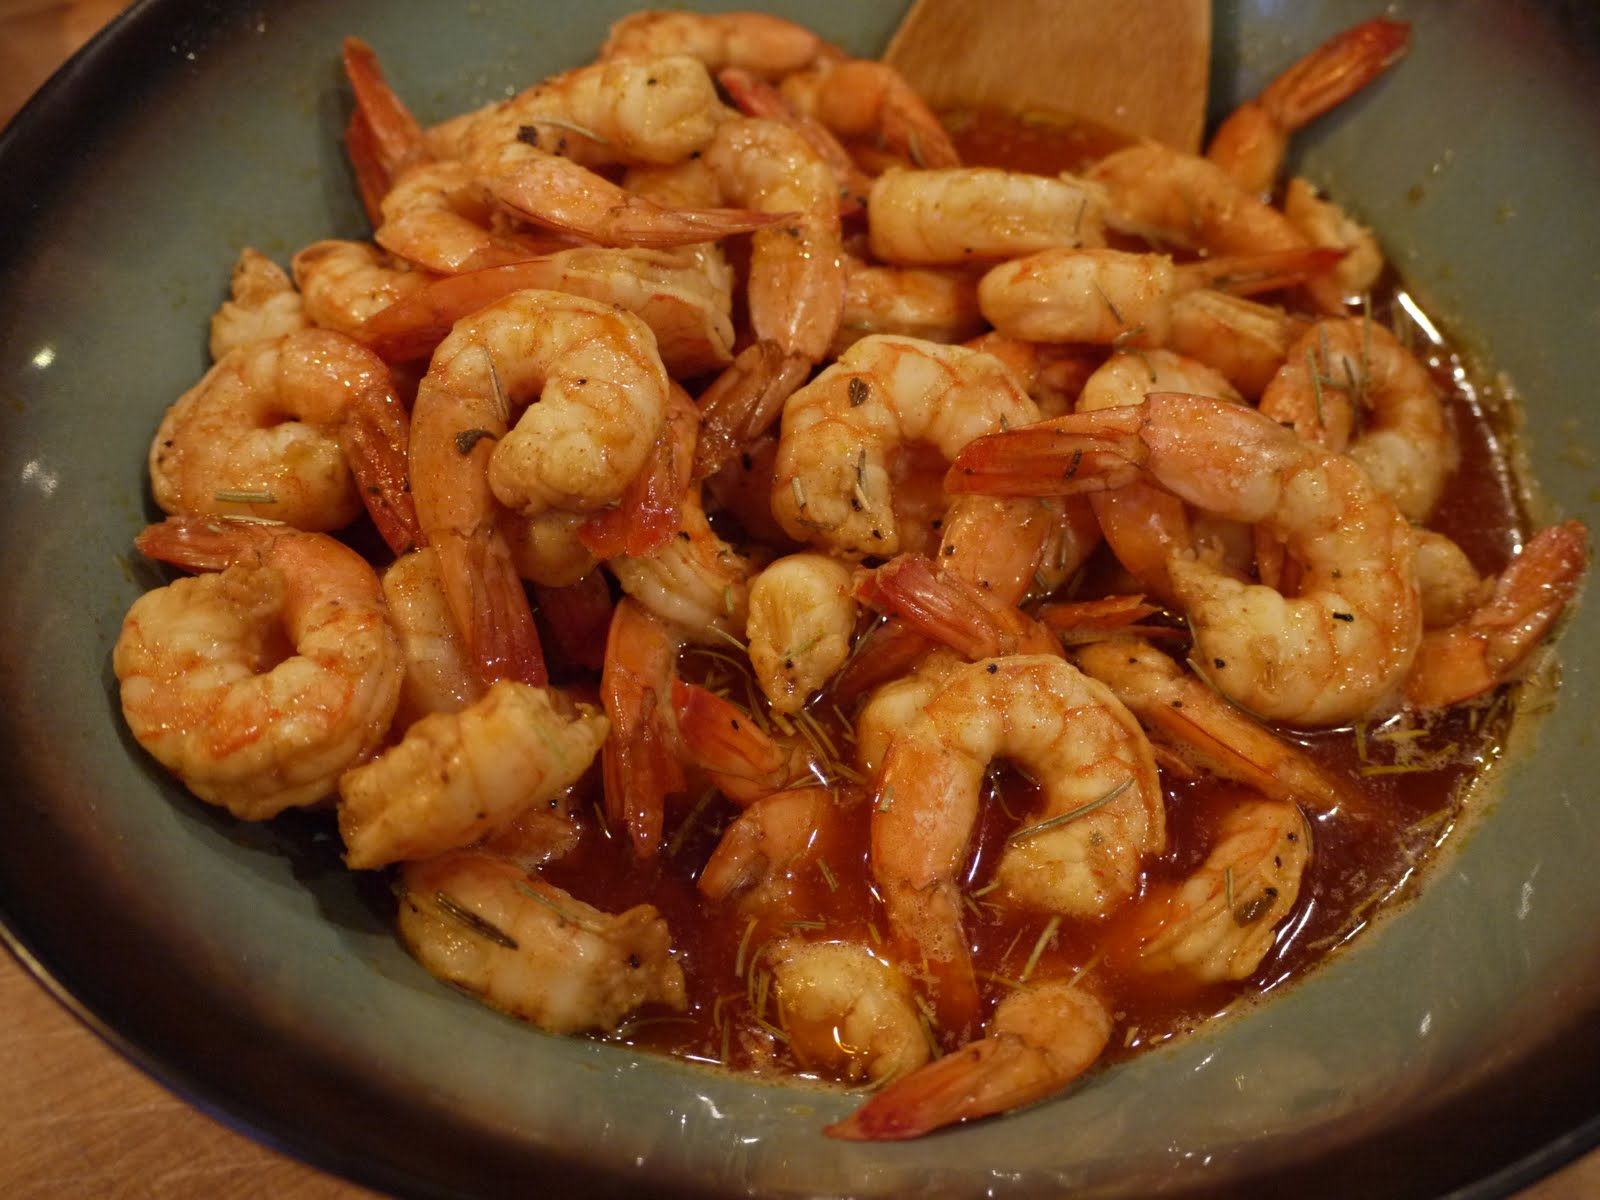 The Bad Girl's Kitchen: New Orleans-style Barbecue Shrimp